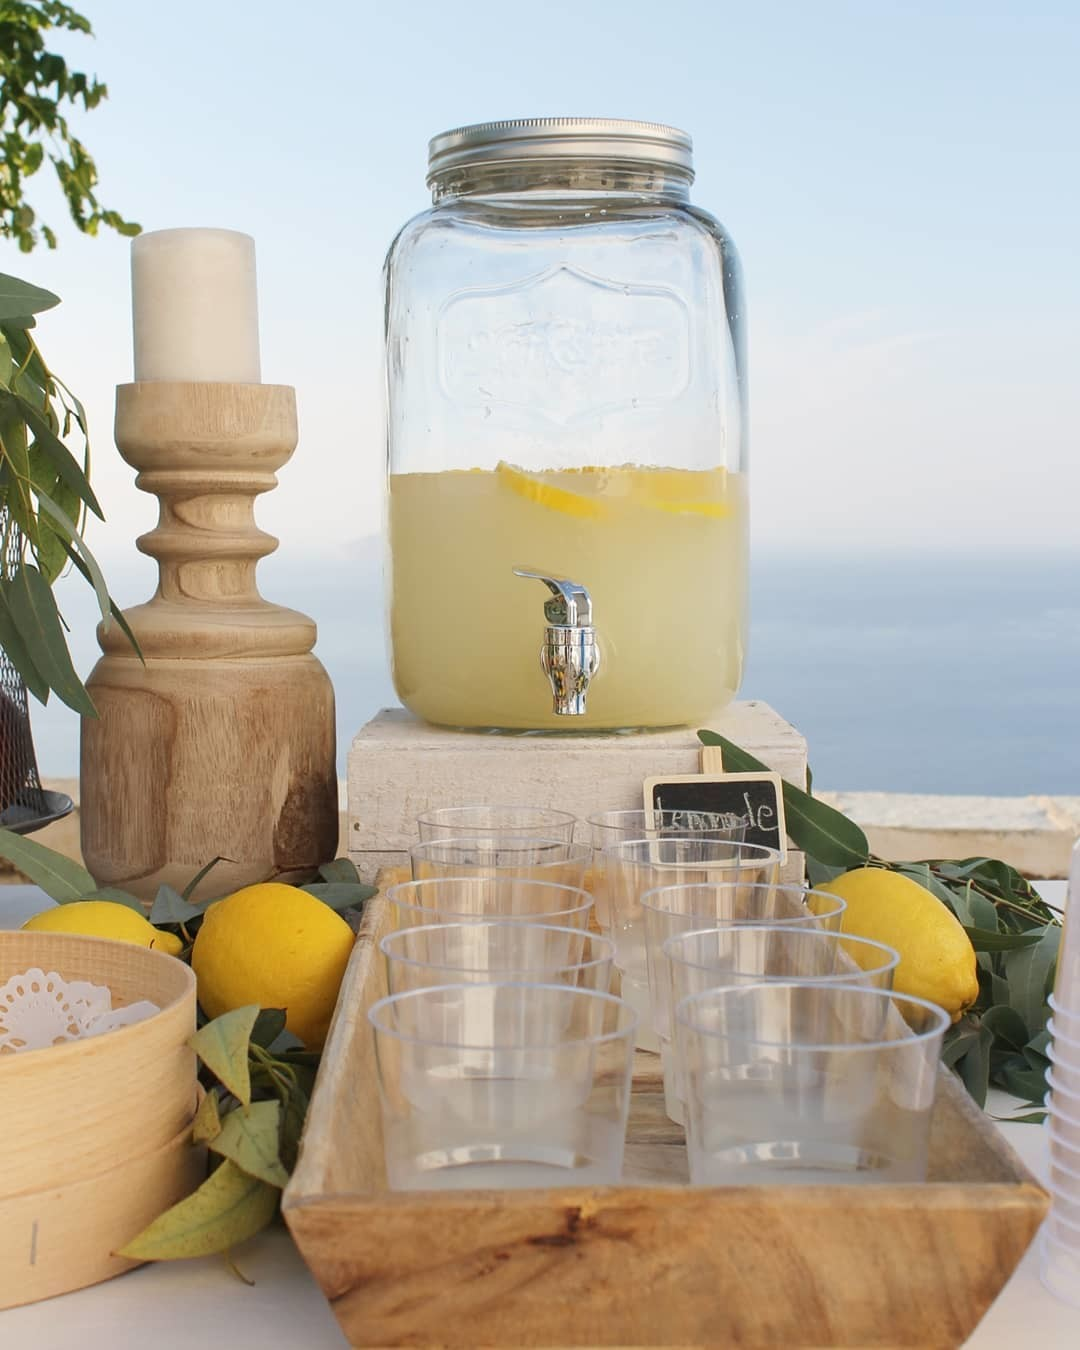 ▪︎When life gives you lemons make a lemonade. Tastes even better with this view in a greek island.▪︎